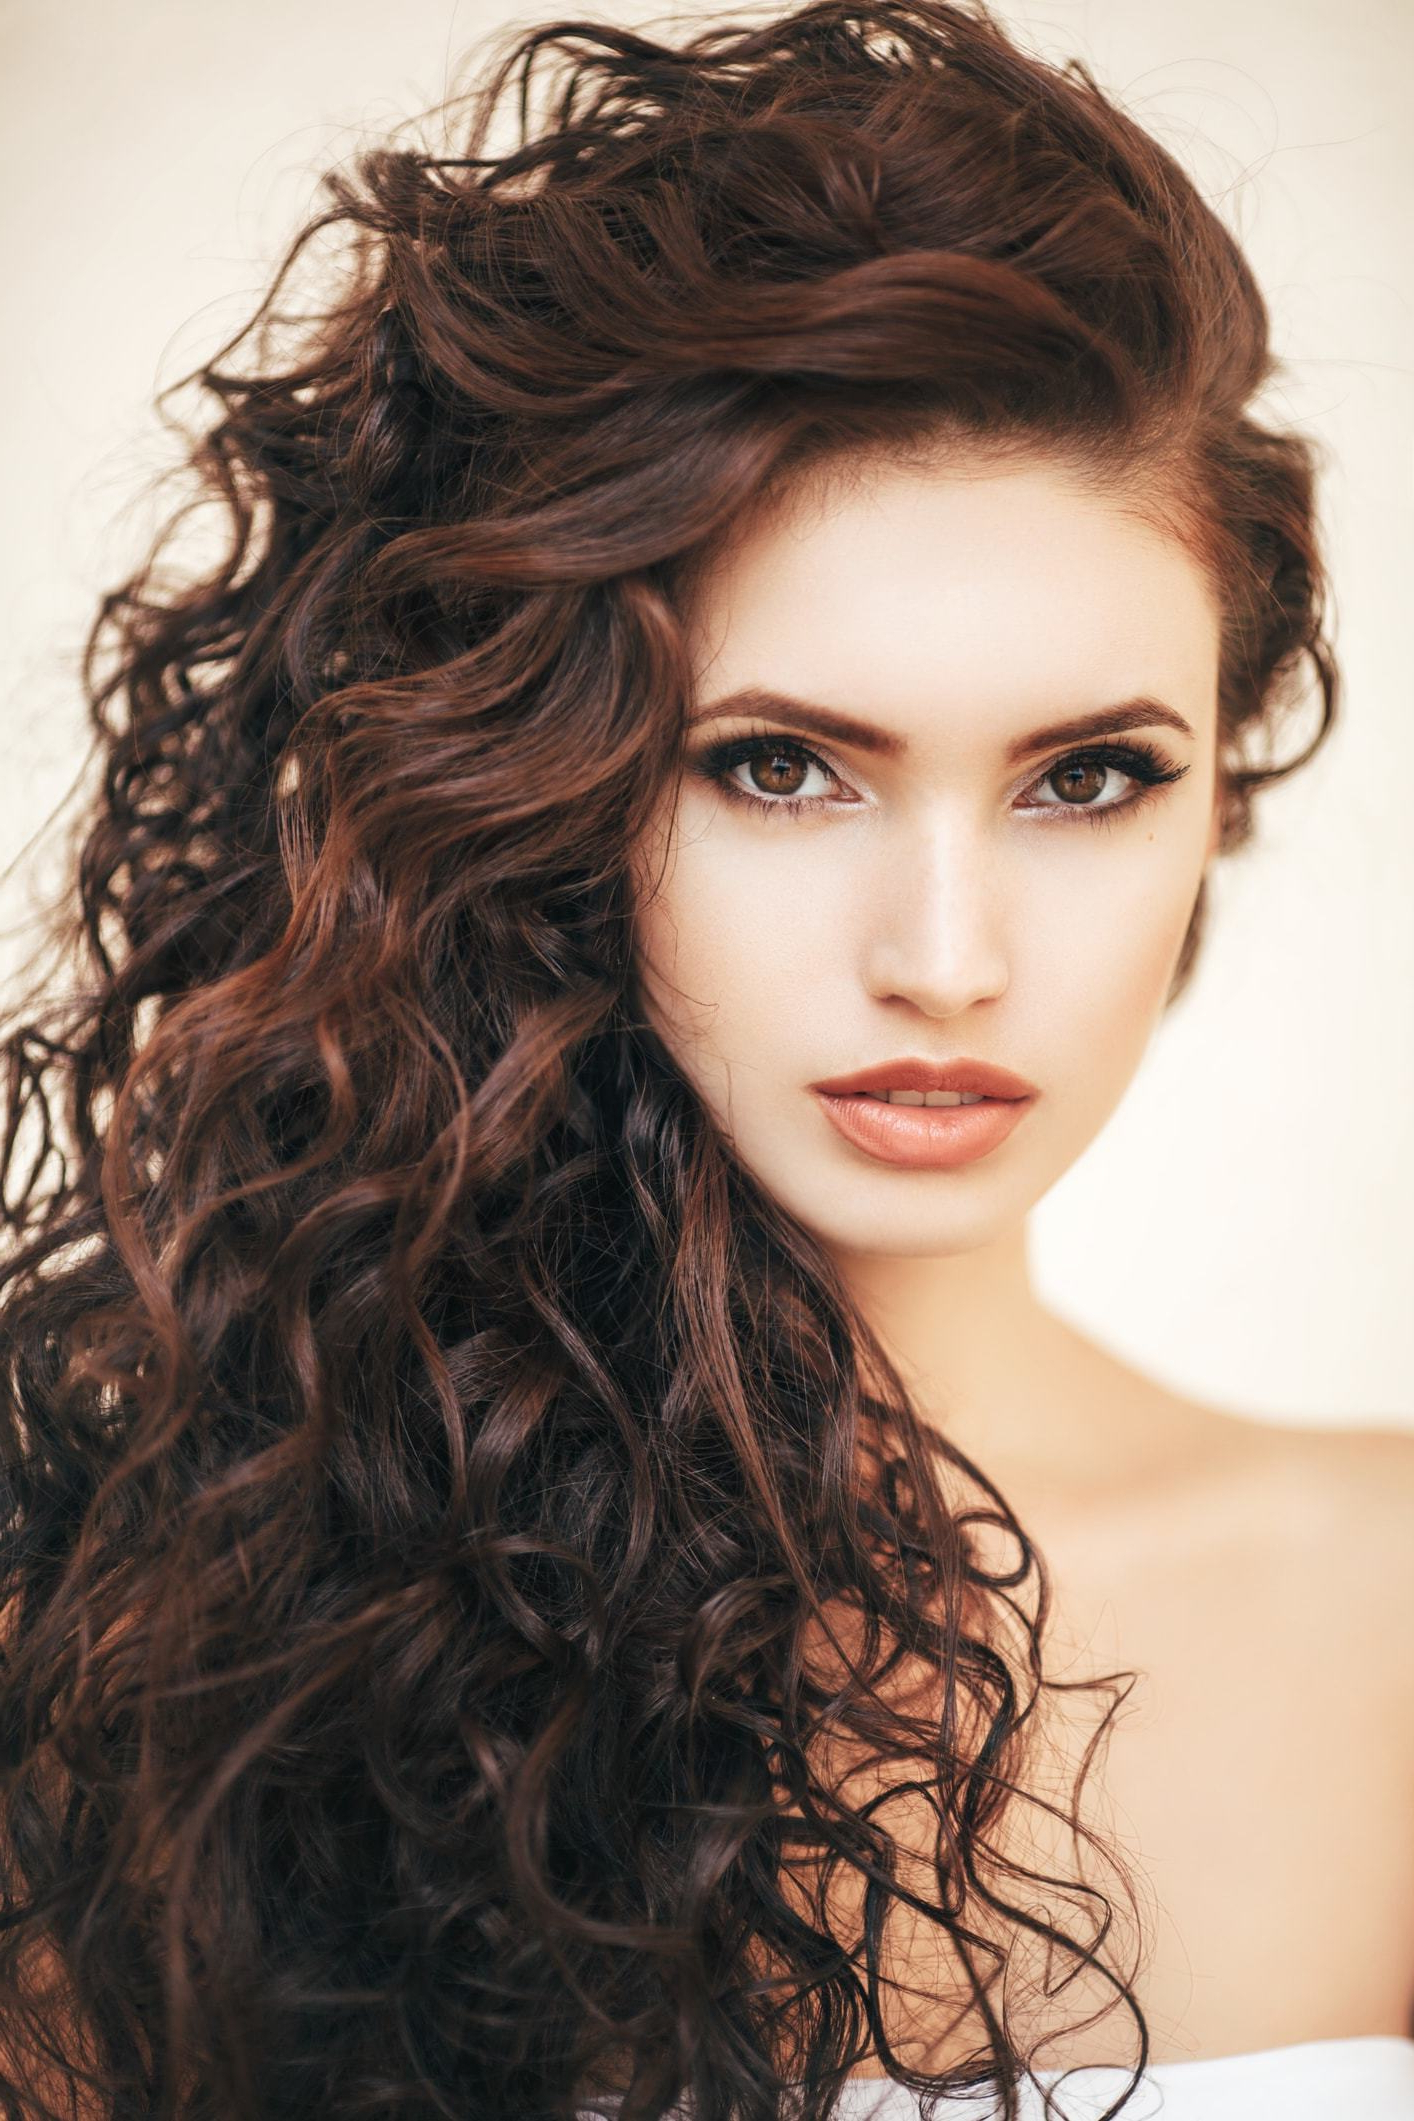 Curly Hairstyles For Long Hair: 19 Kinds Of Curls To Consider In Most Current Layered Ringlets Hairstyles (View 10 of 20)